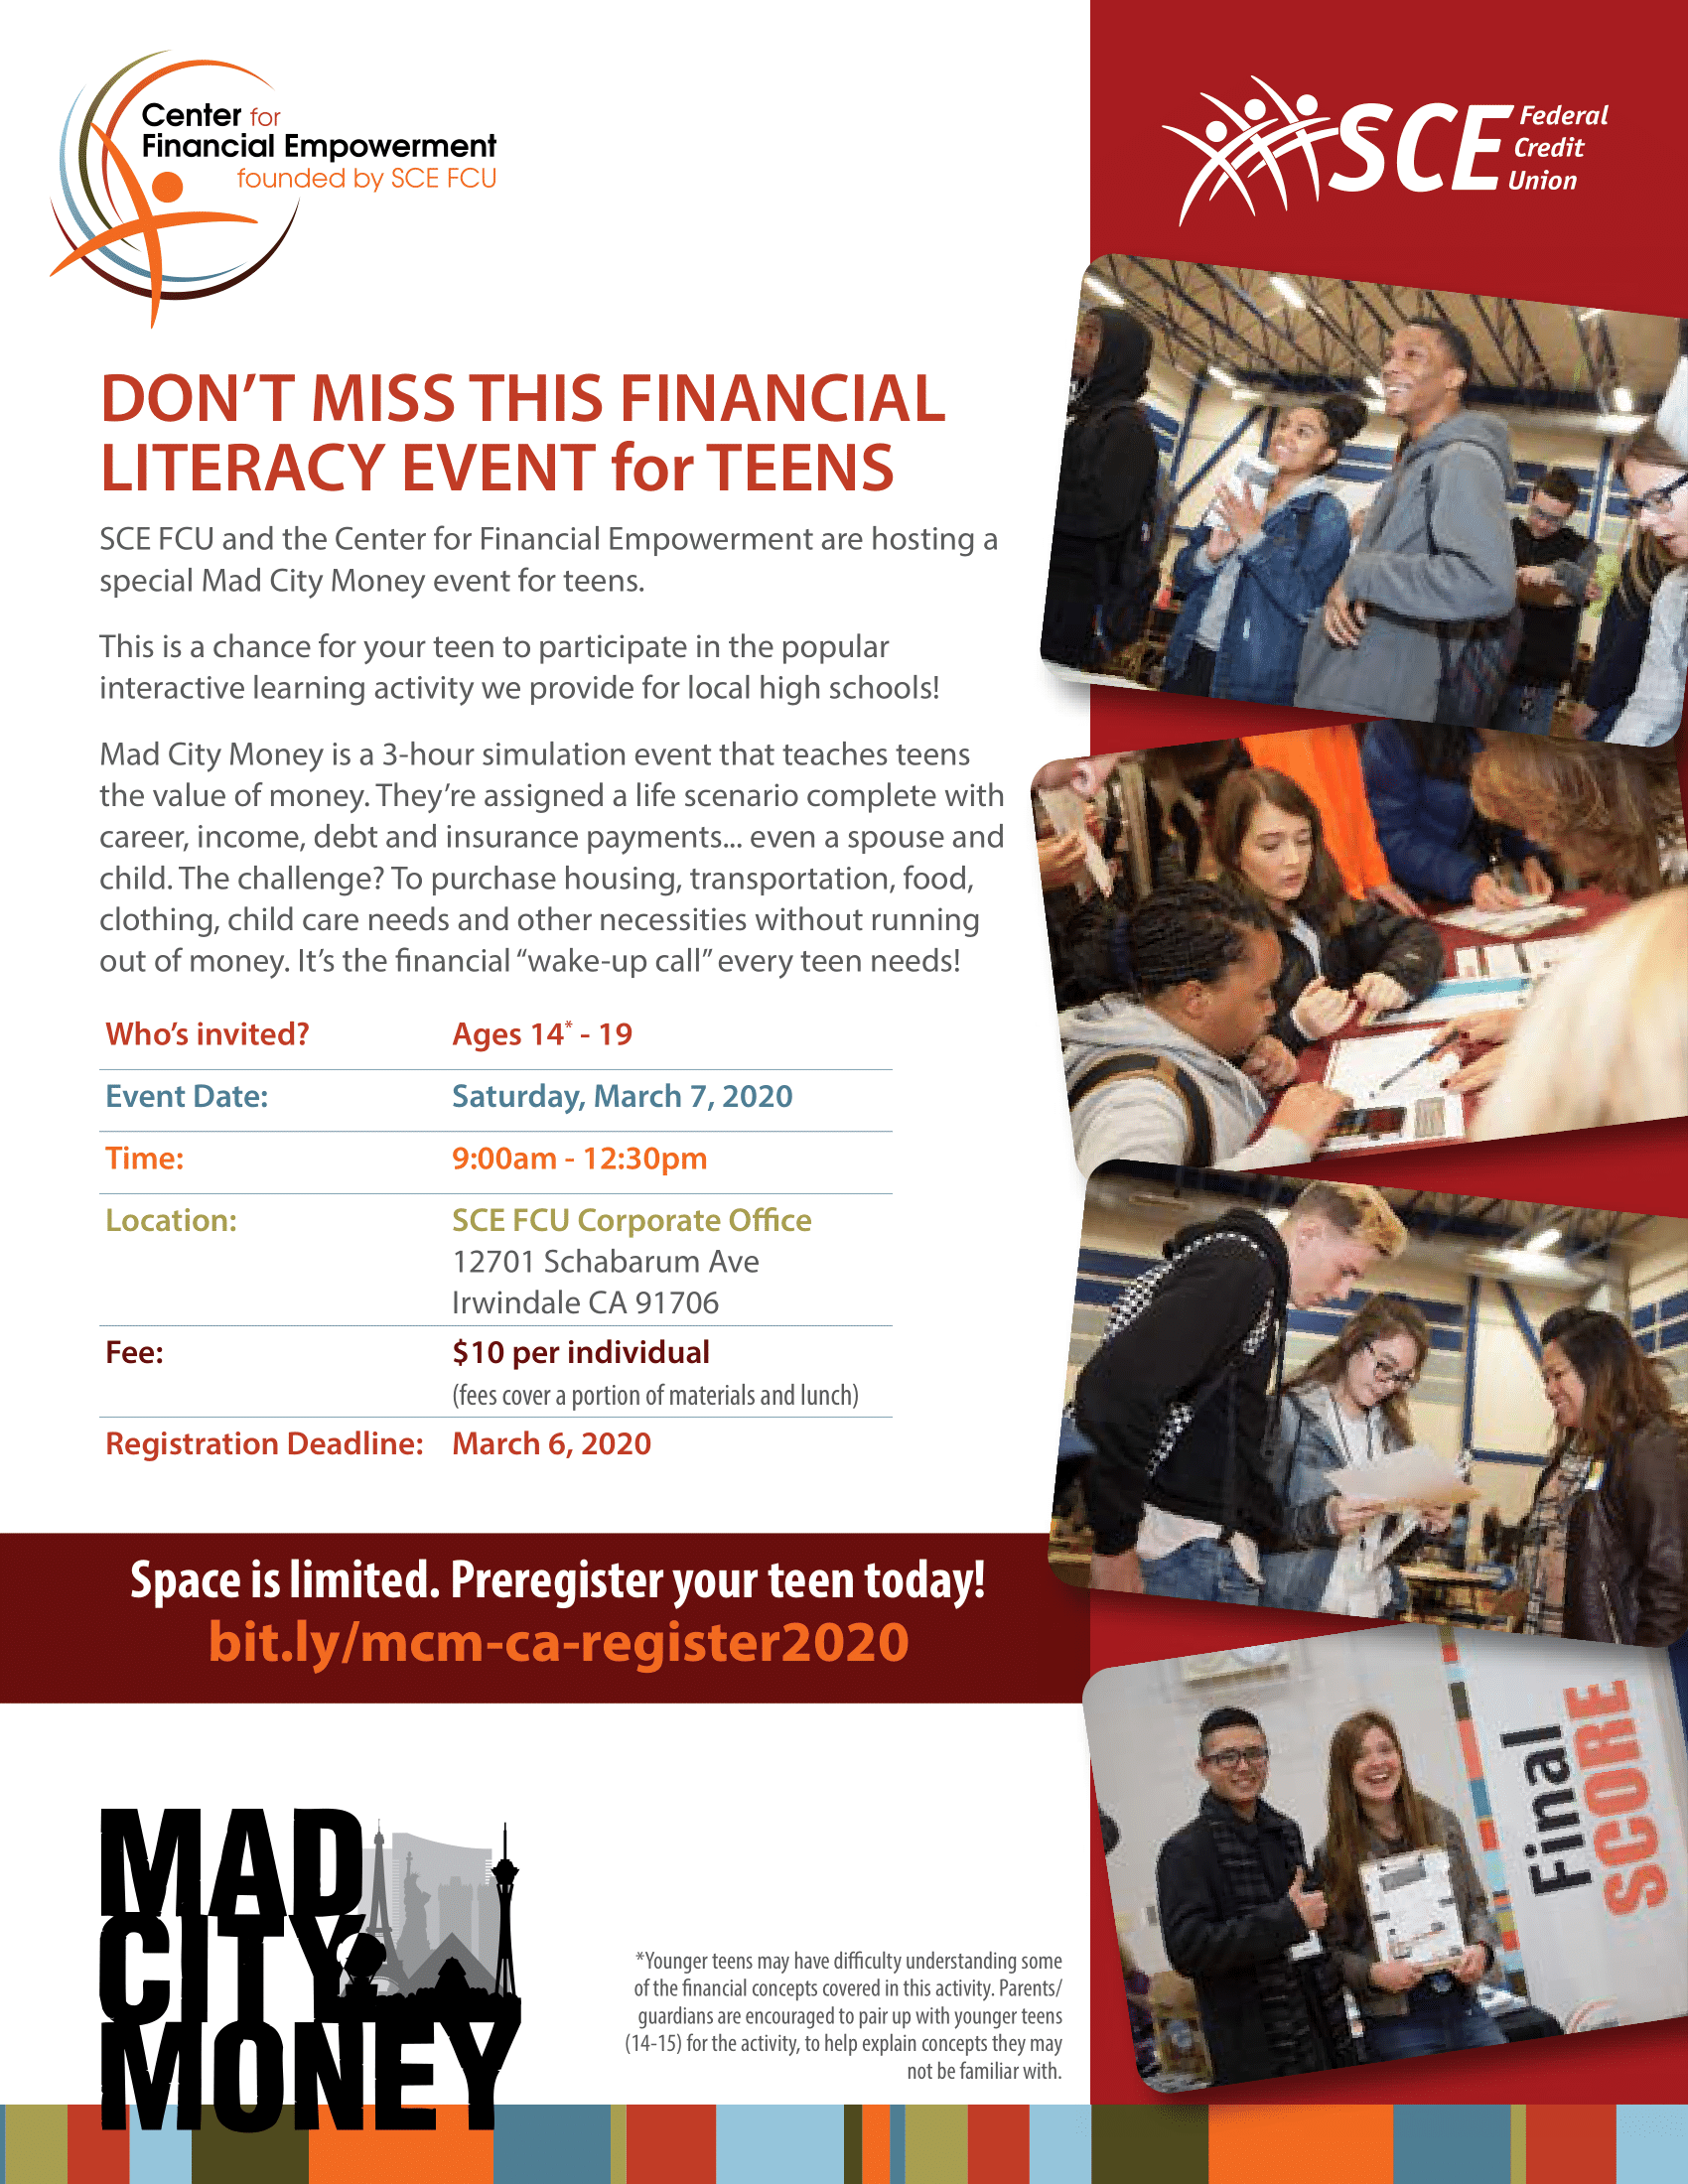 SCEFCU Mad City Money Financial Literacy for Teens event. Saturday, March 7 from 9am to 12:30pm. $10.00 fee, register at link